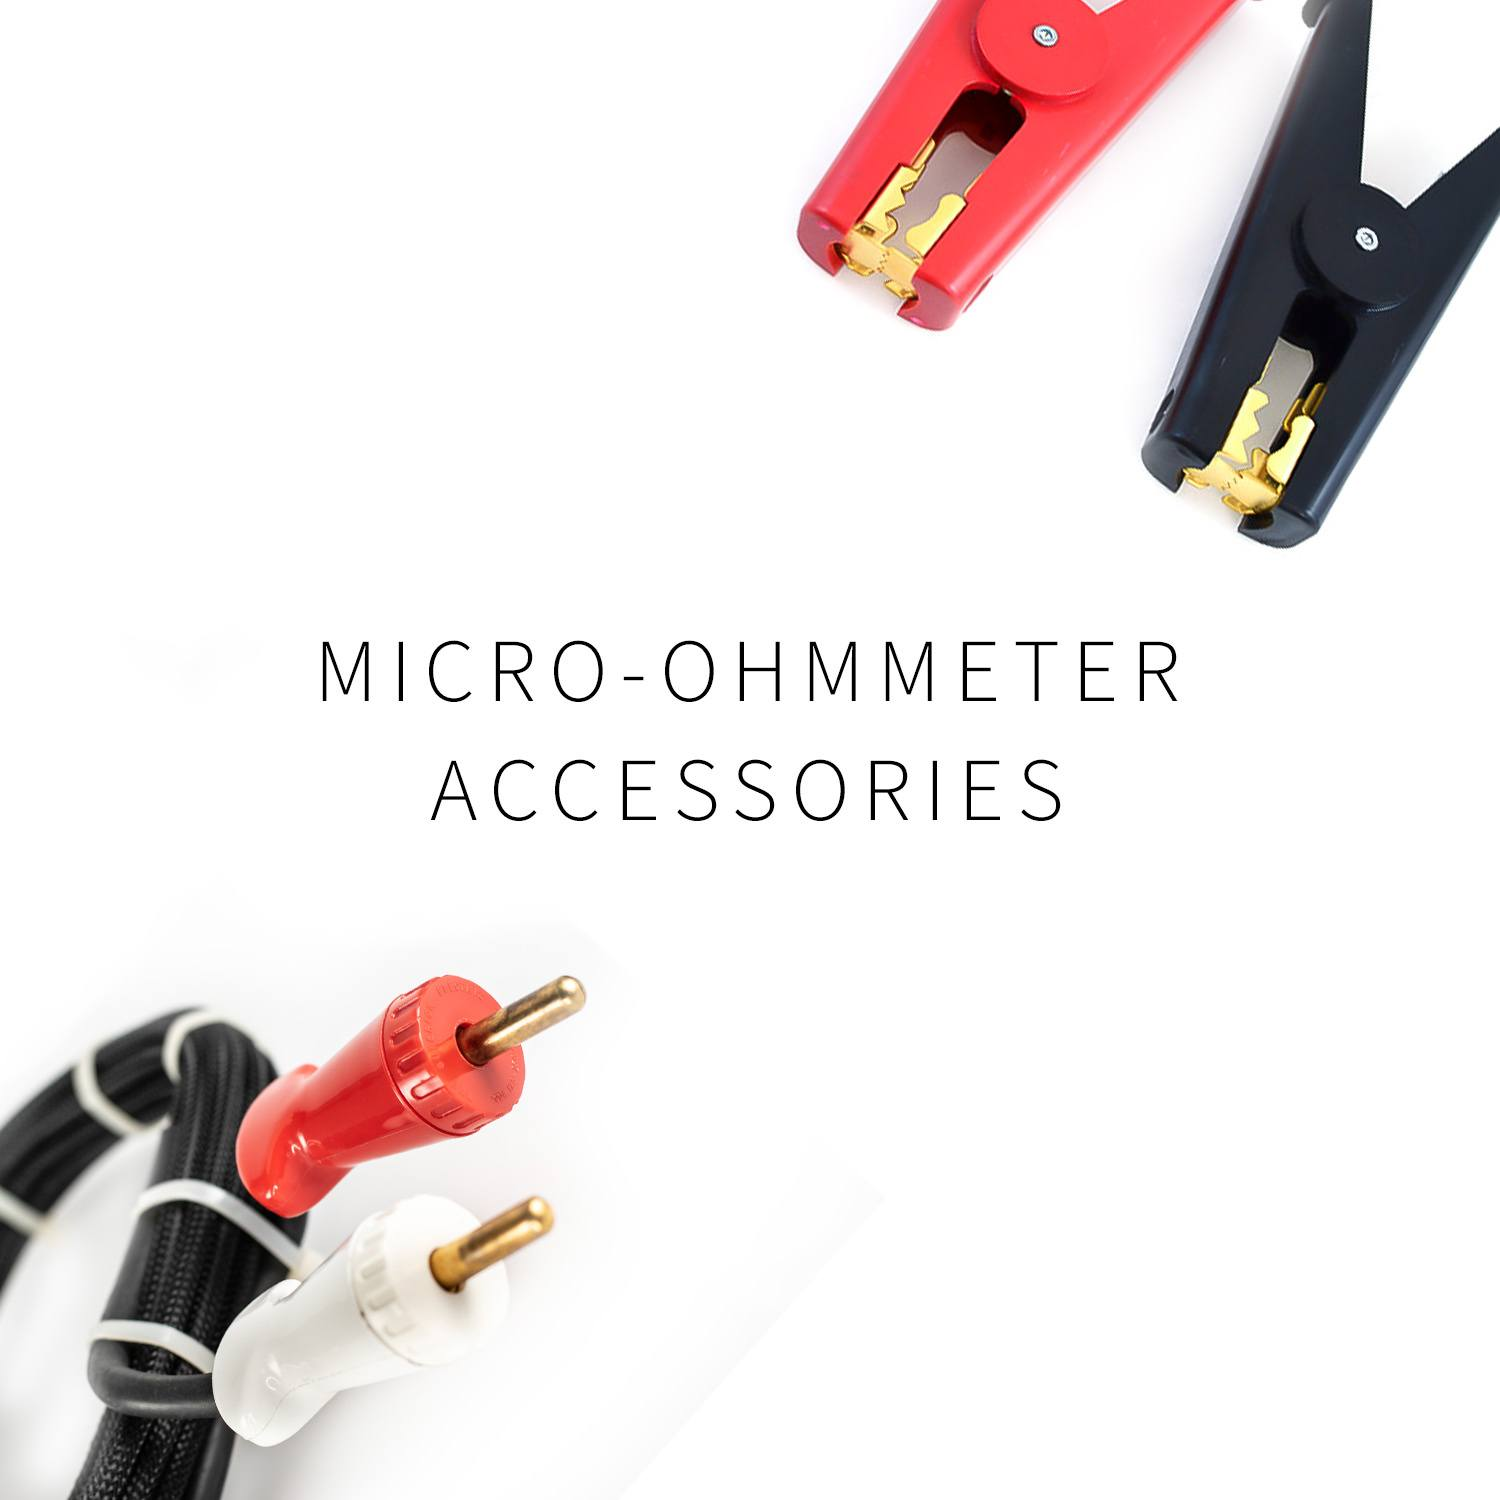 Micro-Ohmmeter Accessories